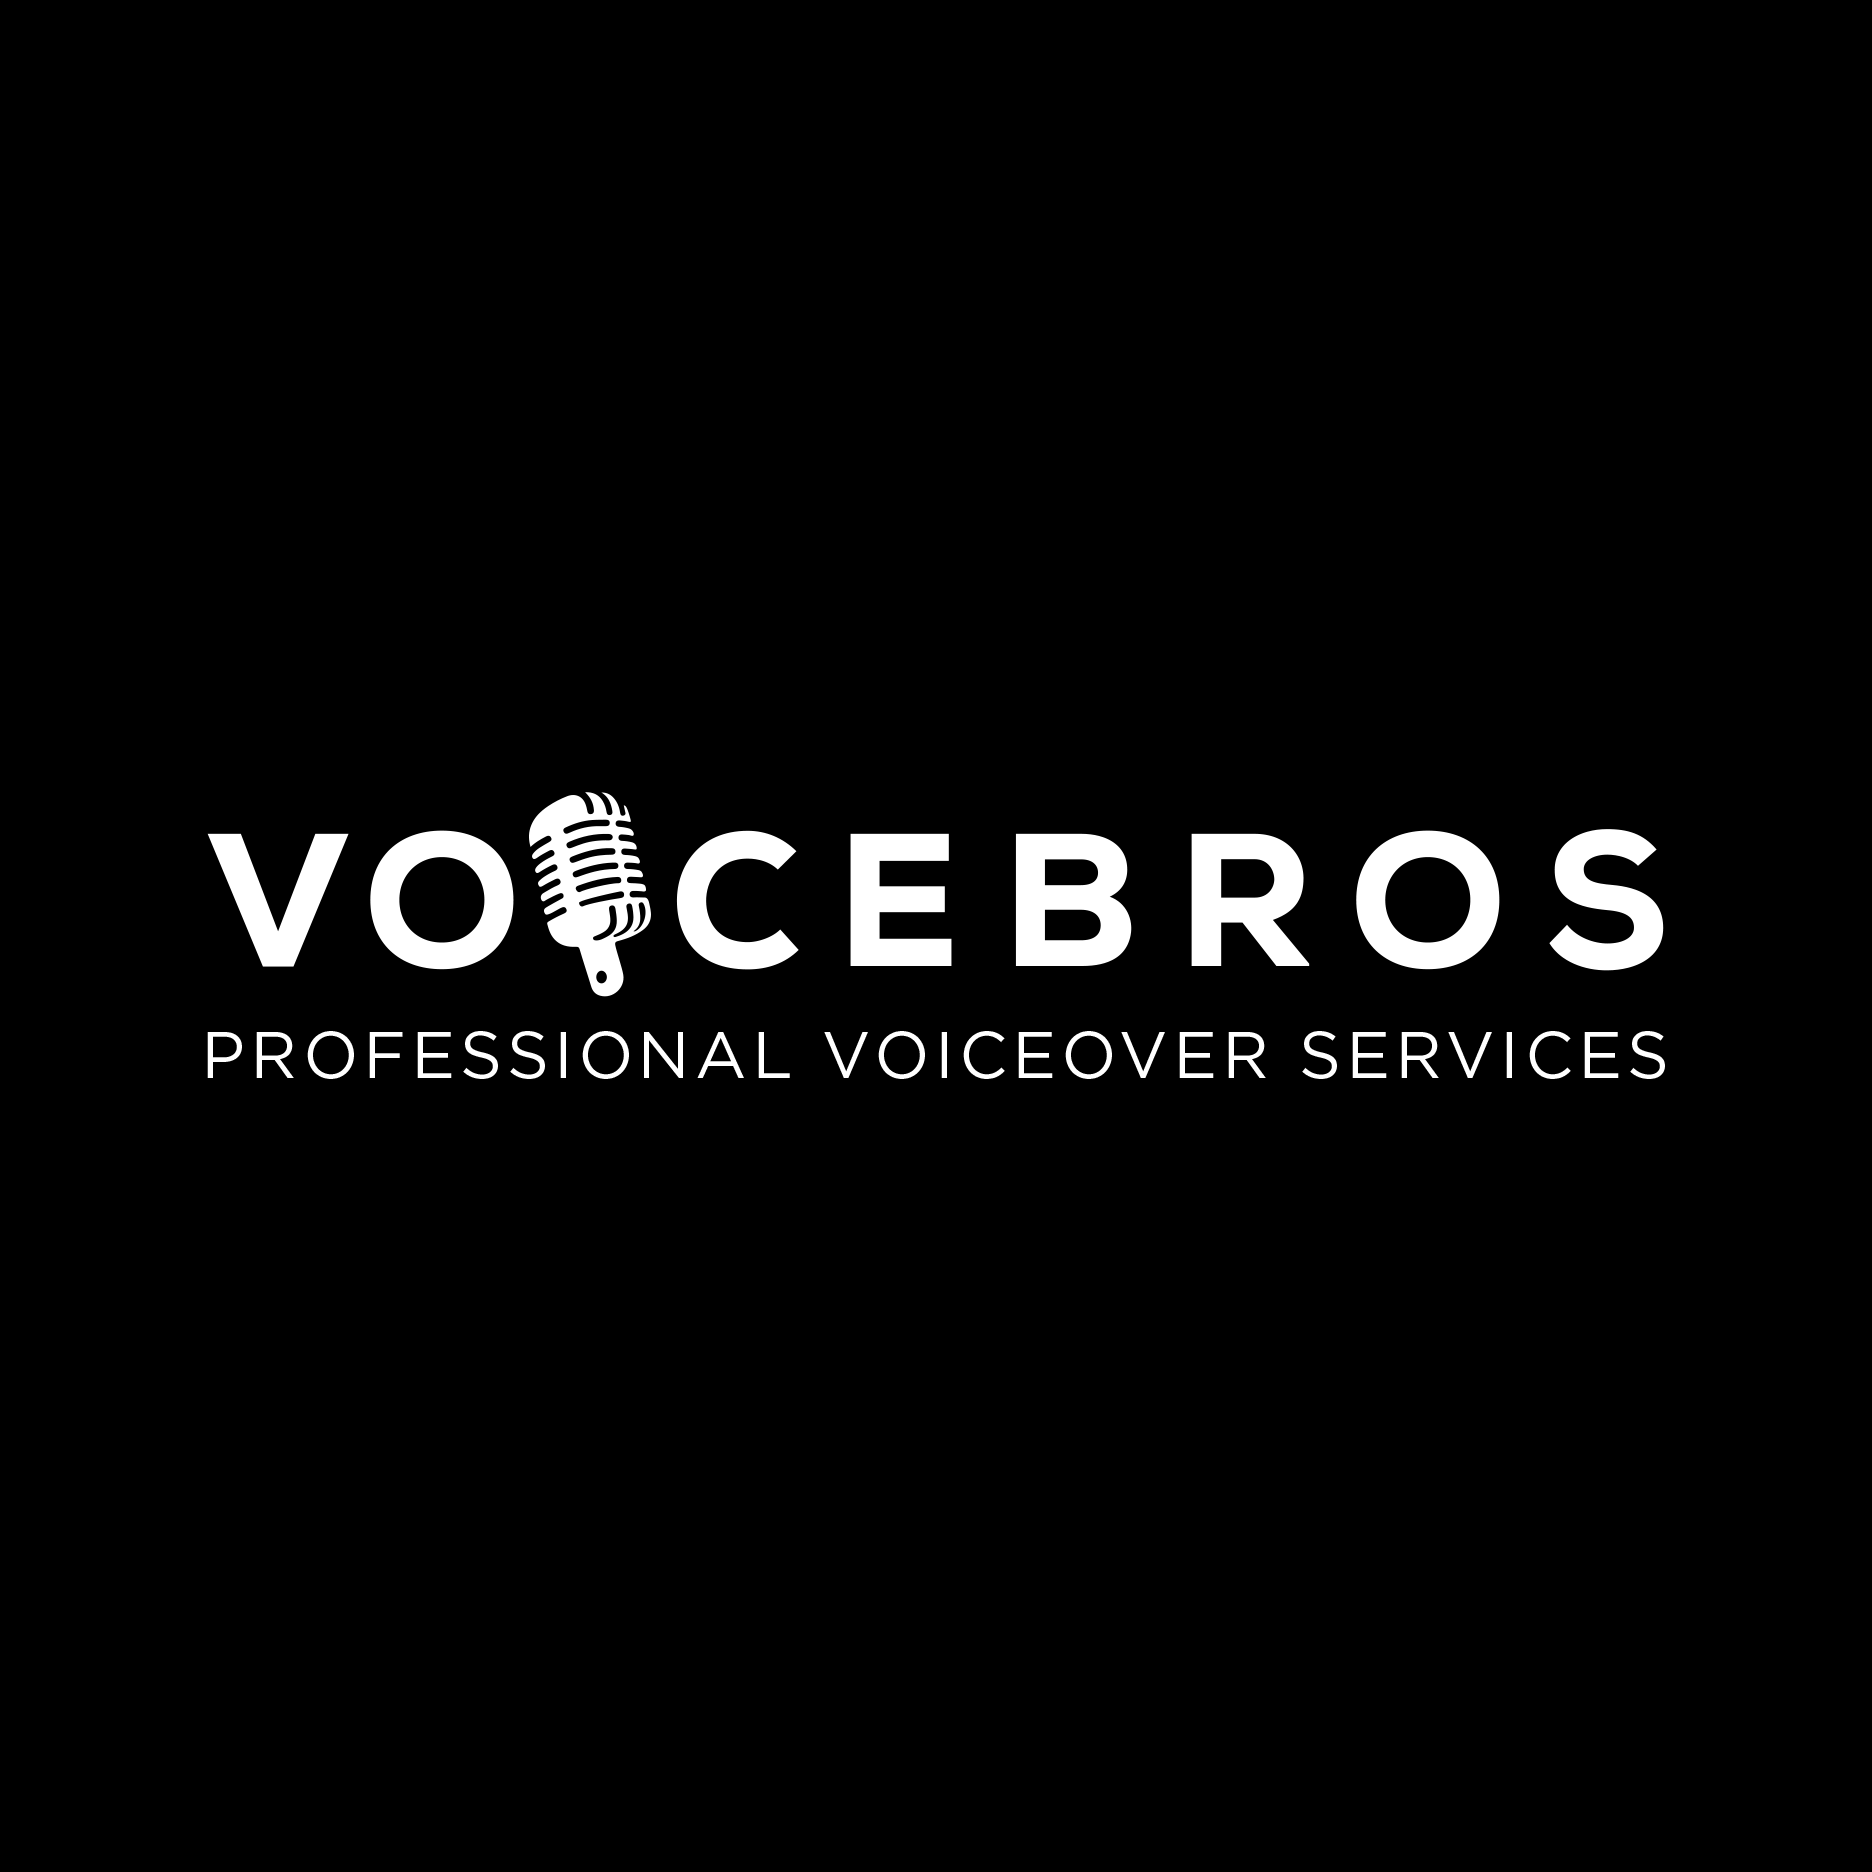 Constanze W. is a voice over actor